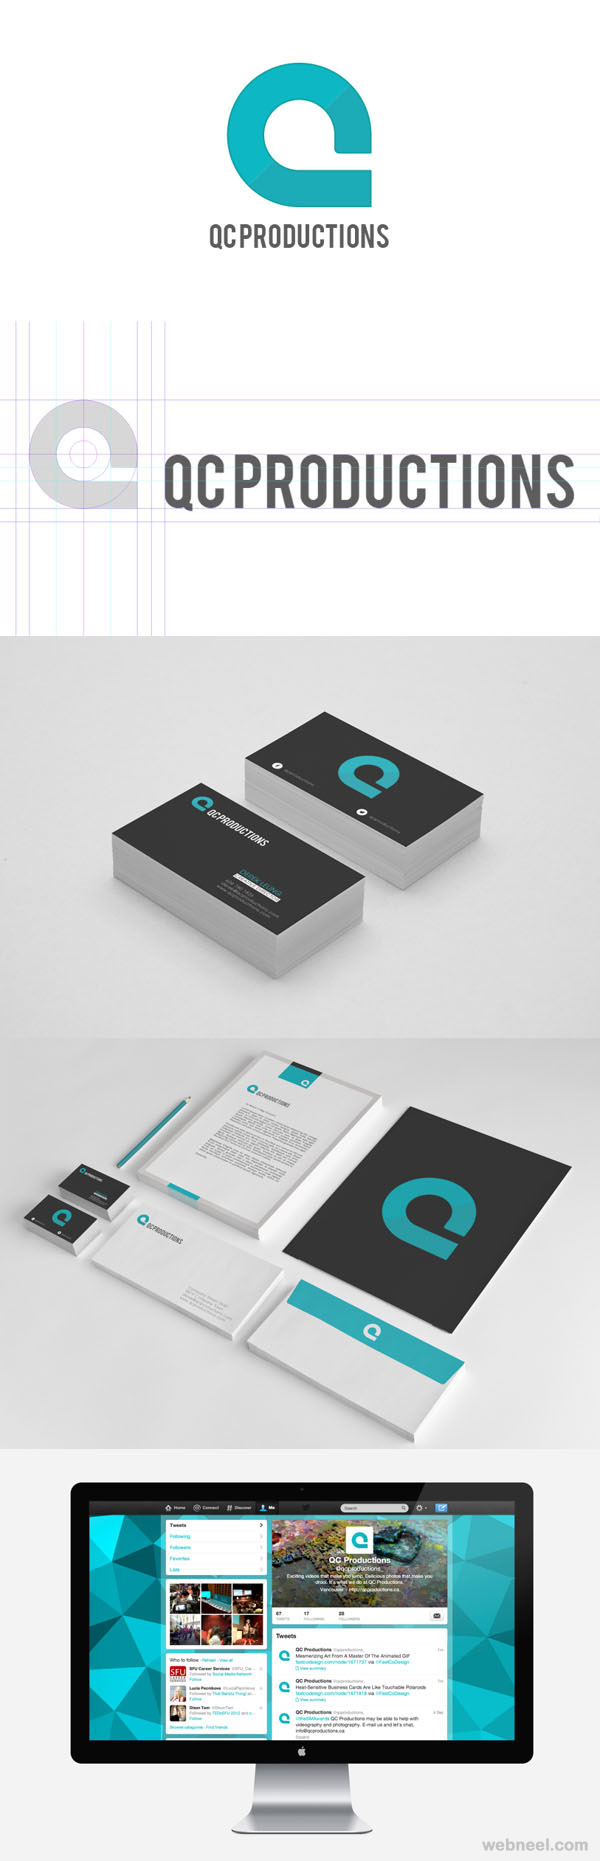 qcproduction branding identity design